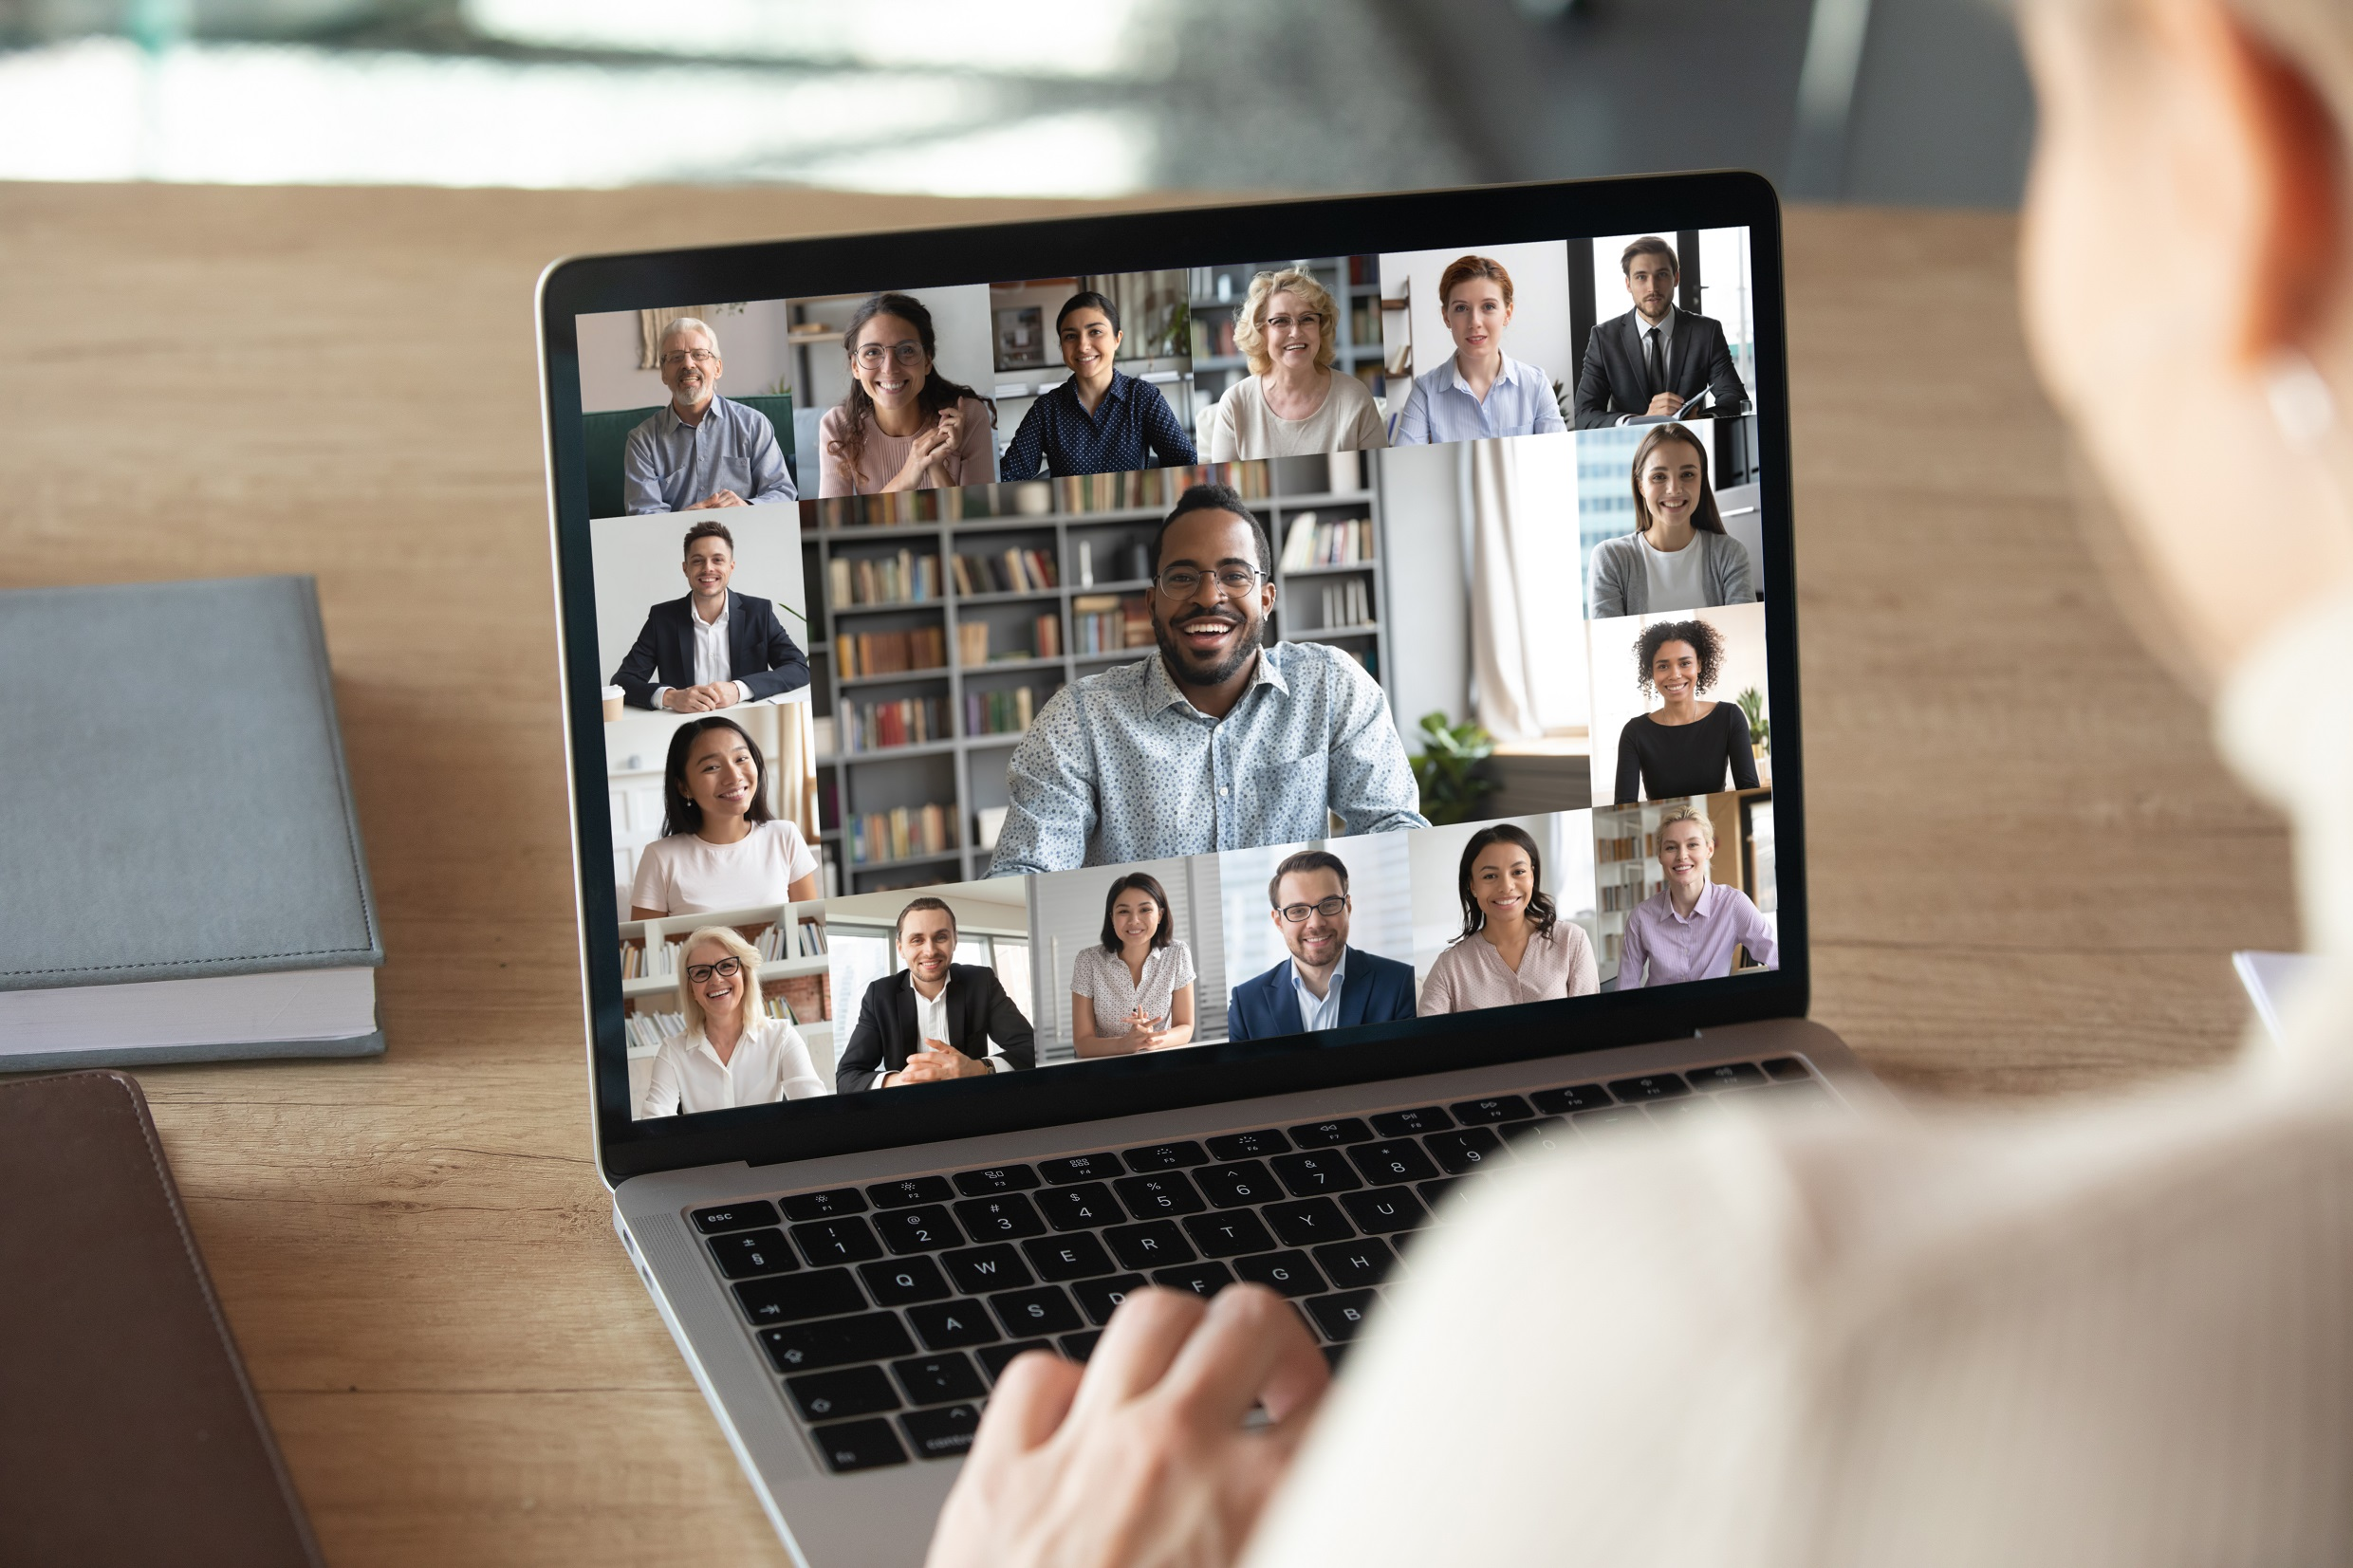 Over the should view of a person on a laptop, the screen shows a video call with a diverse range of people